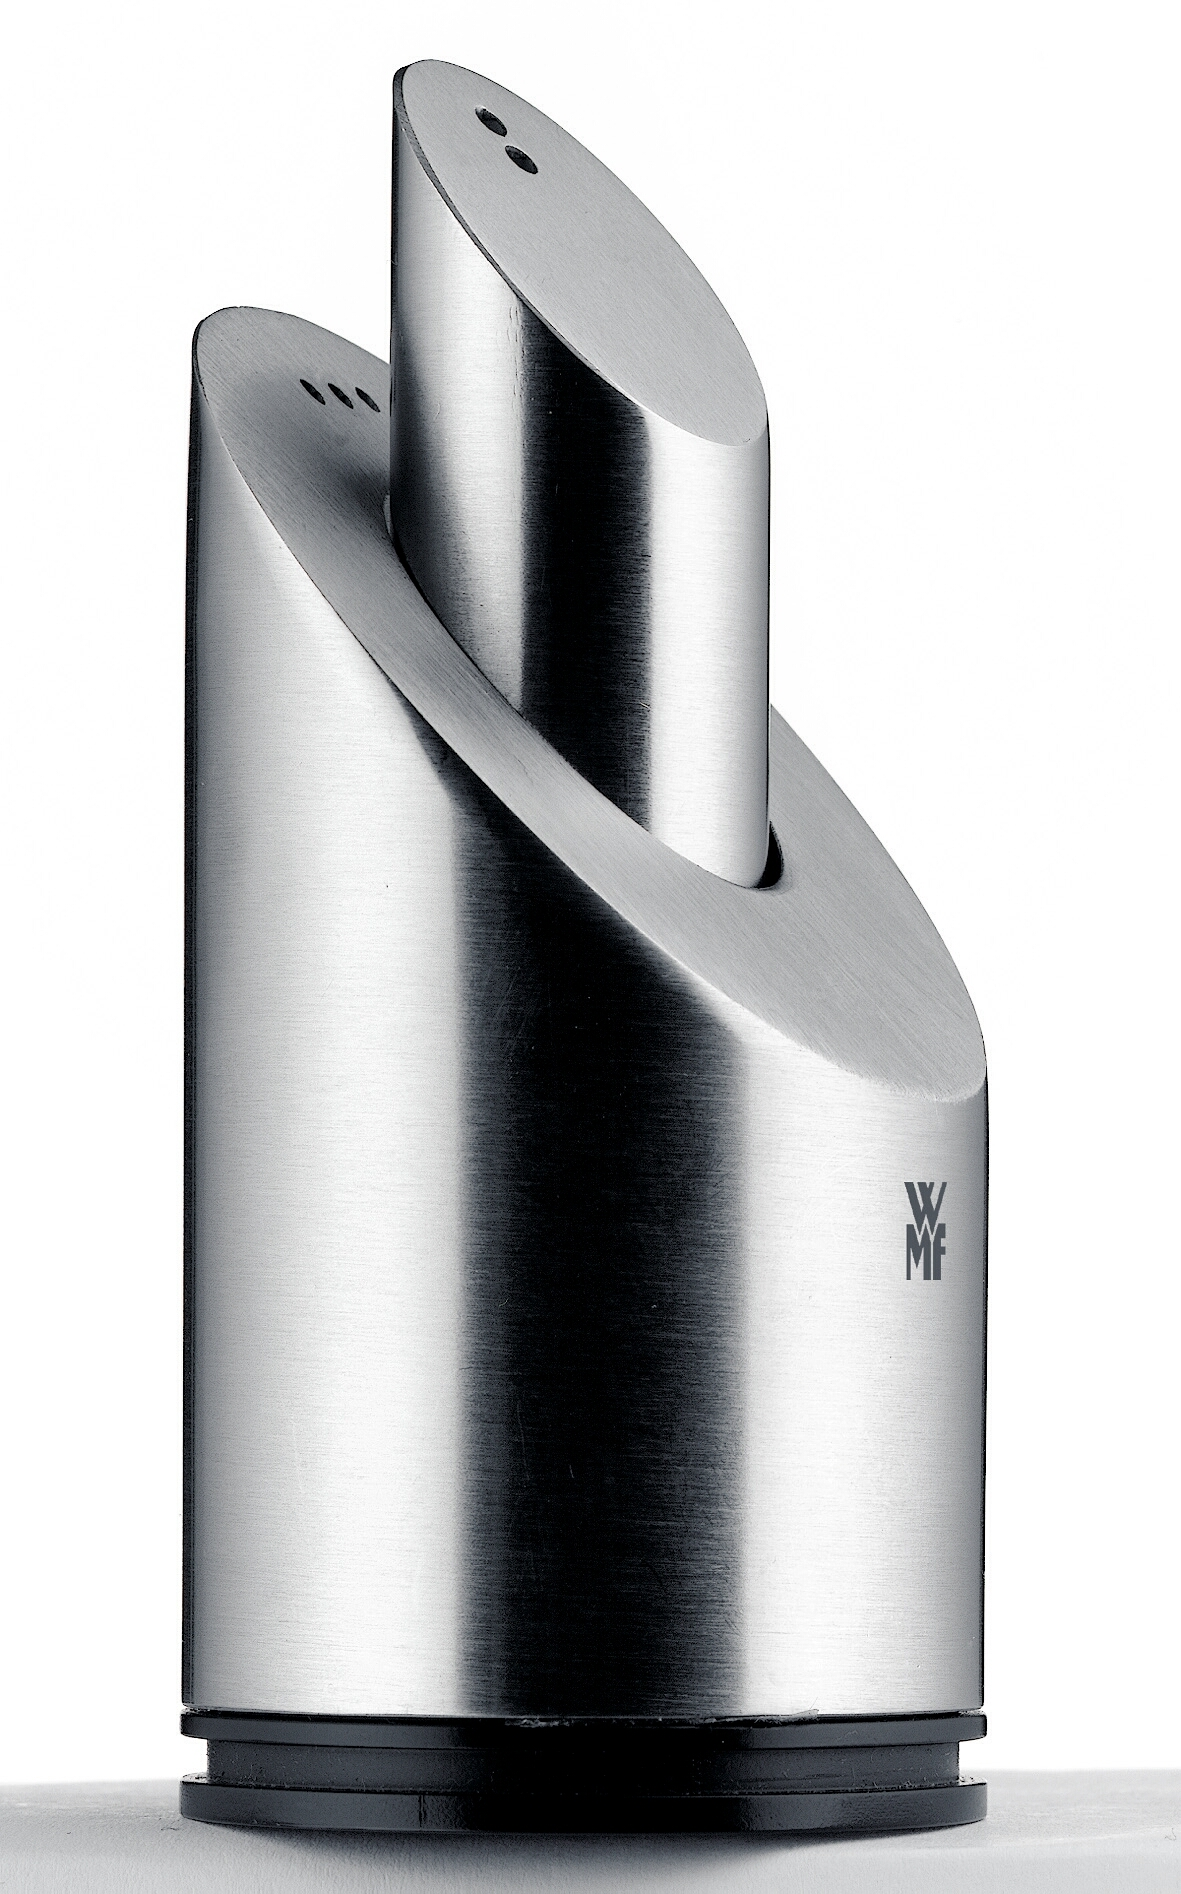 WMf 18/10 Stainless Steel 2-in-1 Cylinder Salt and Pepper Shaker